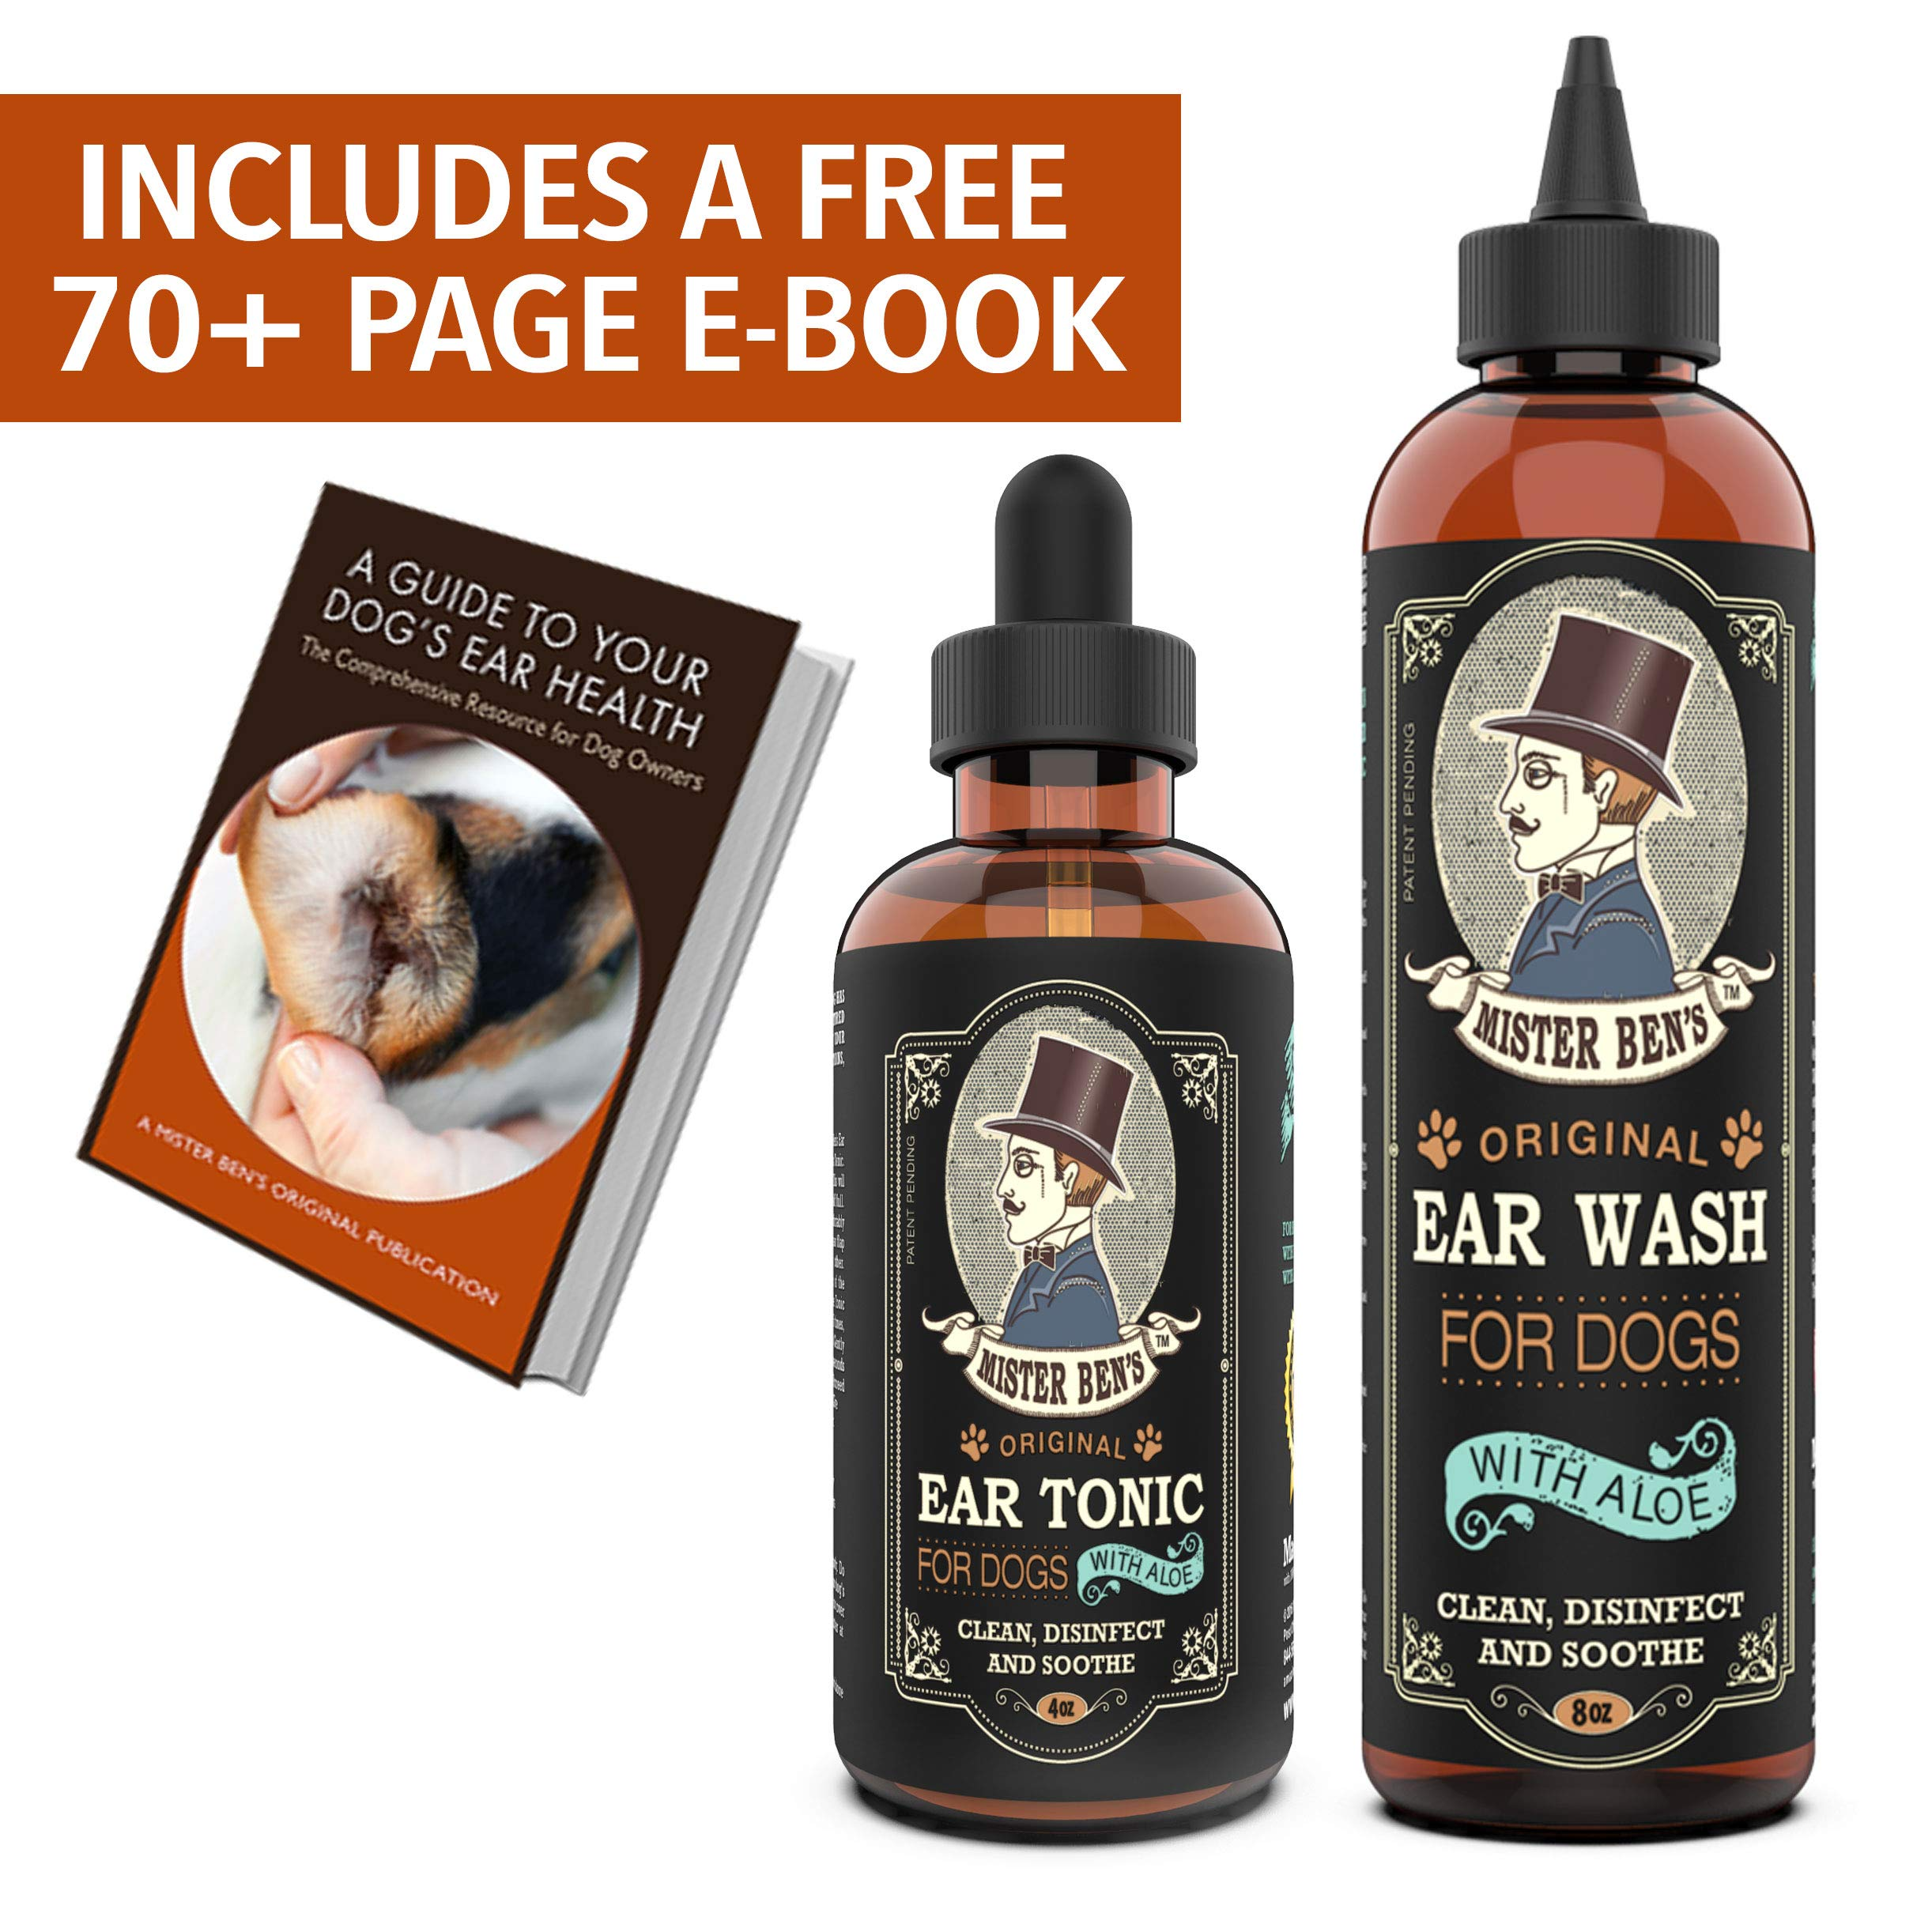 Mister Ben's Original Ear Care Kit for Dogs - Most effective dog ear treatment & cleaner - Includes Tonic & Wash - Provides fast relief from infections, itching, odors, bacteria, mites, fungus & yeast by Mister Ben's